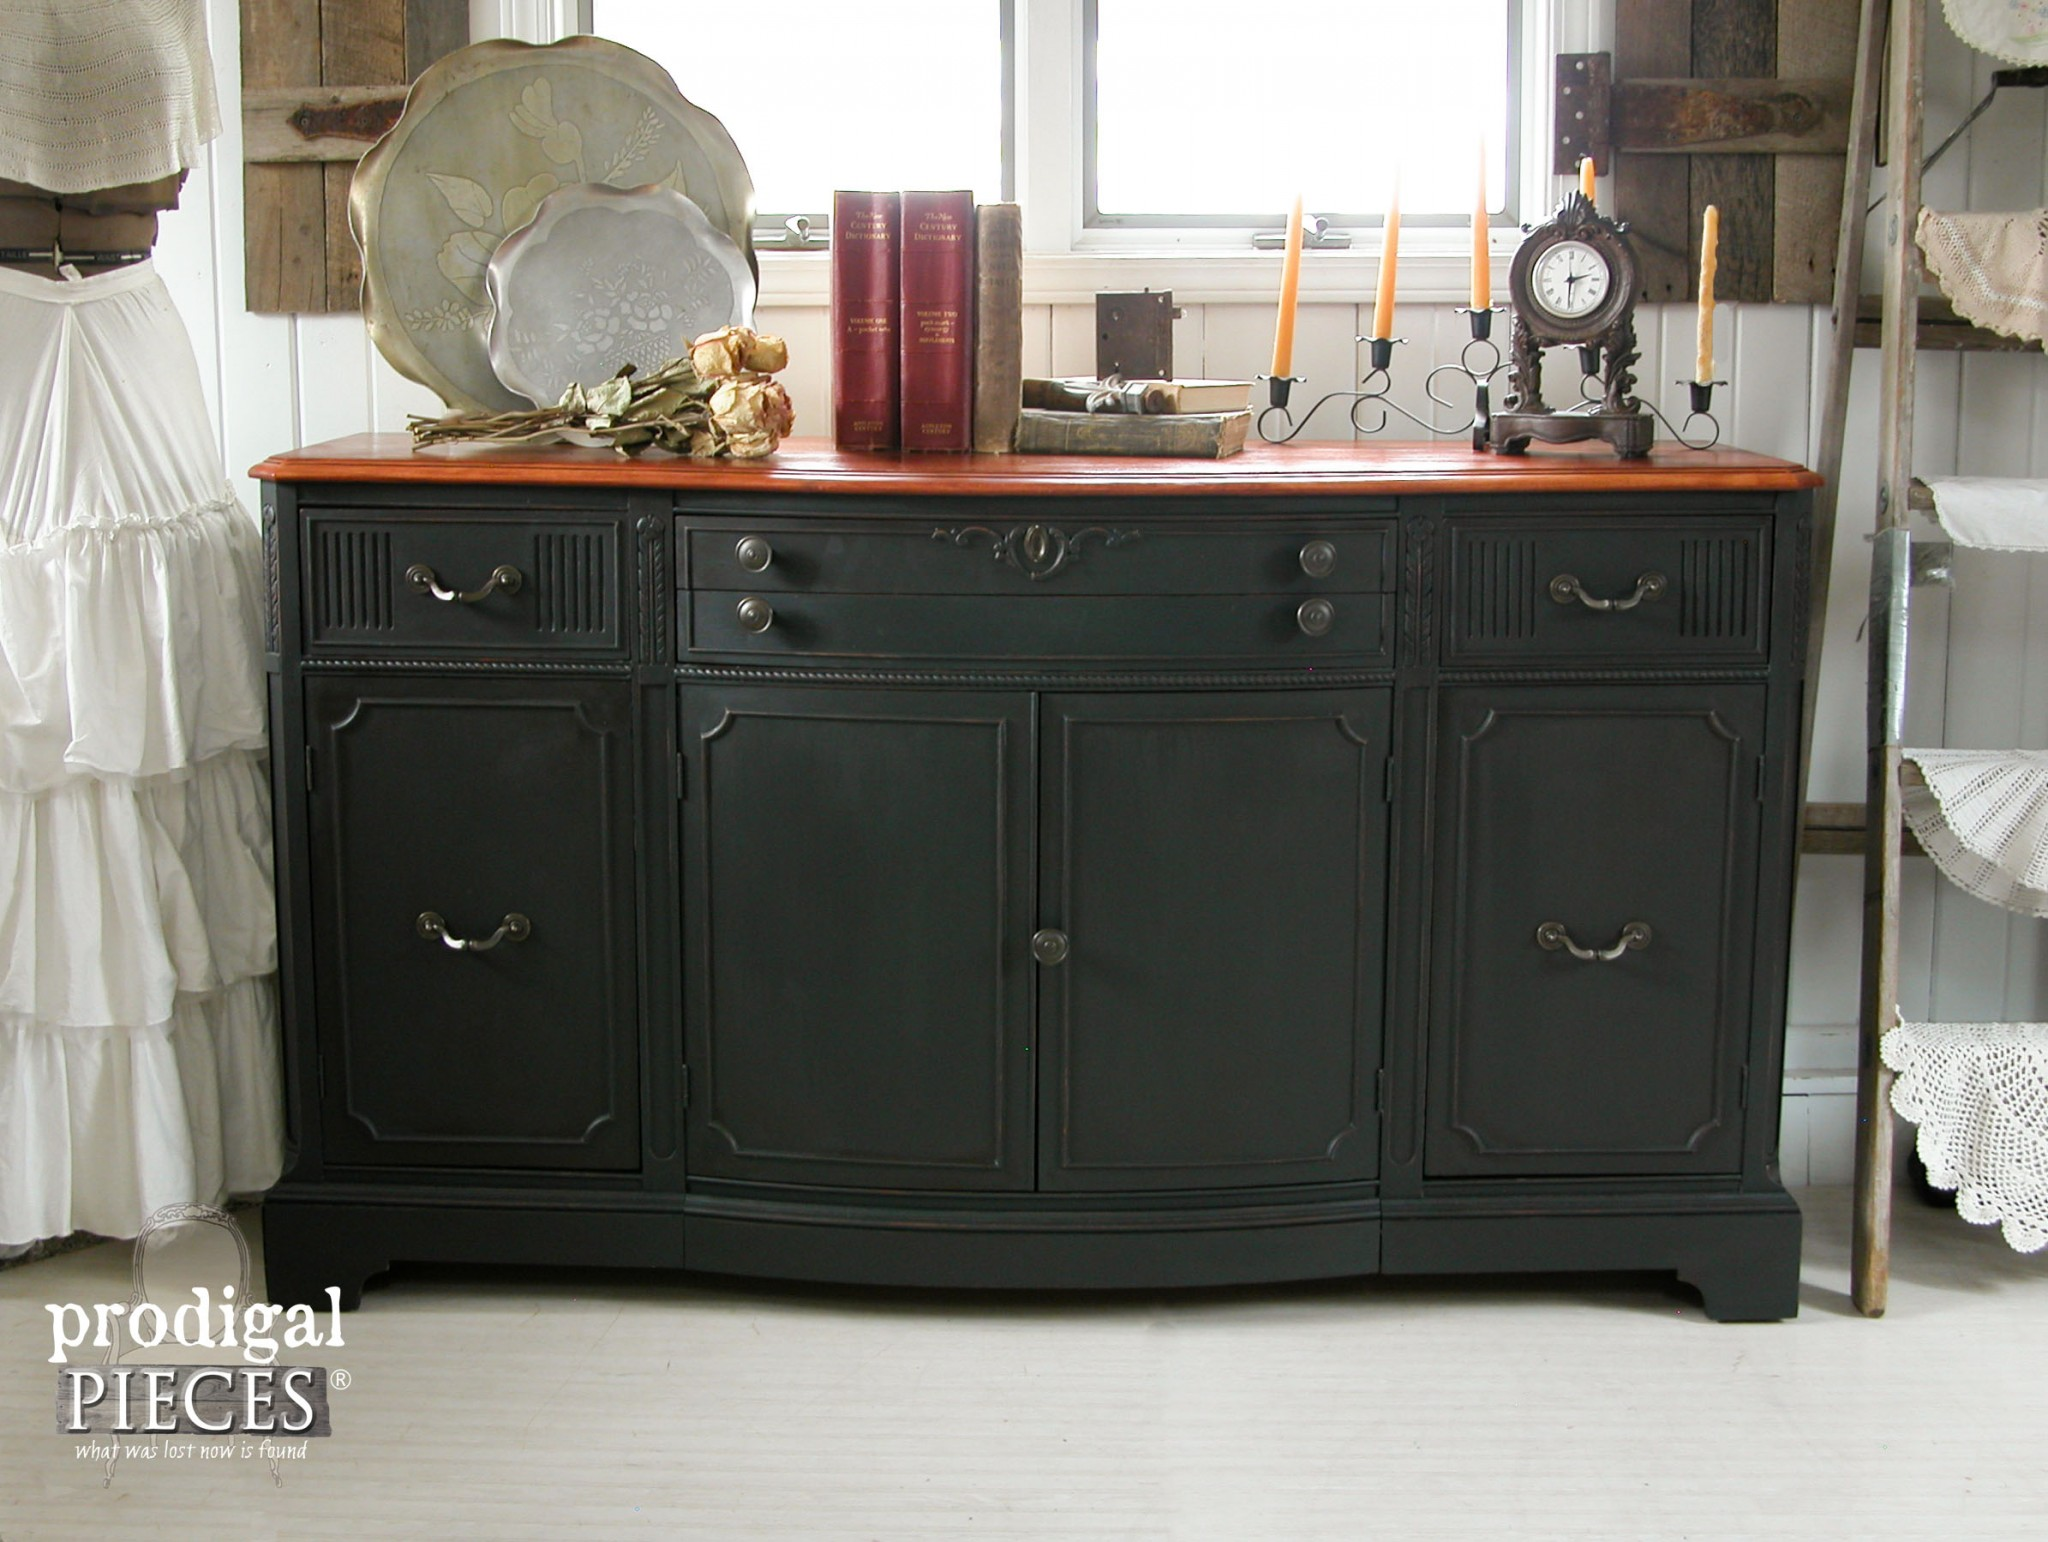 Buffet Or Sideboard Difference Buffet Makeover ~ A Night & Day Difference - Prodigal Pieces